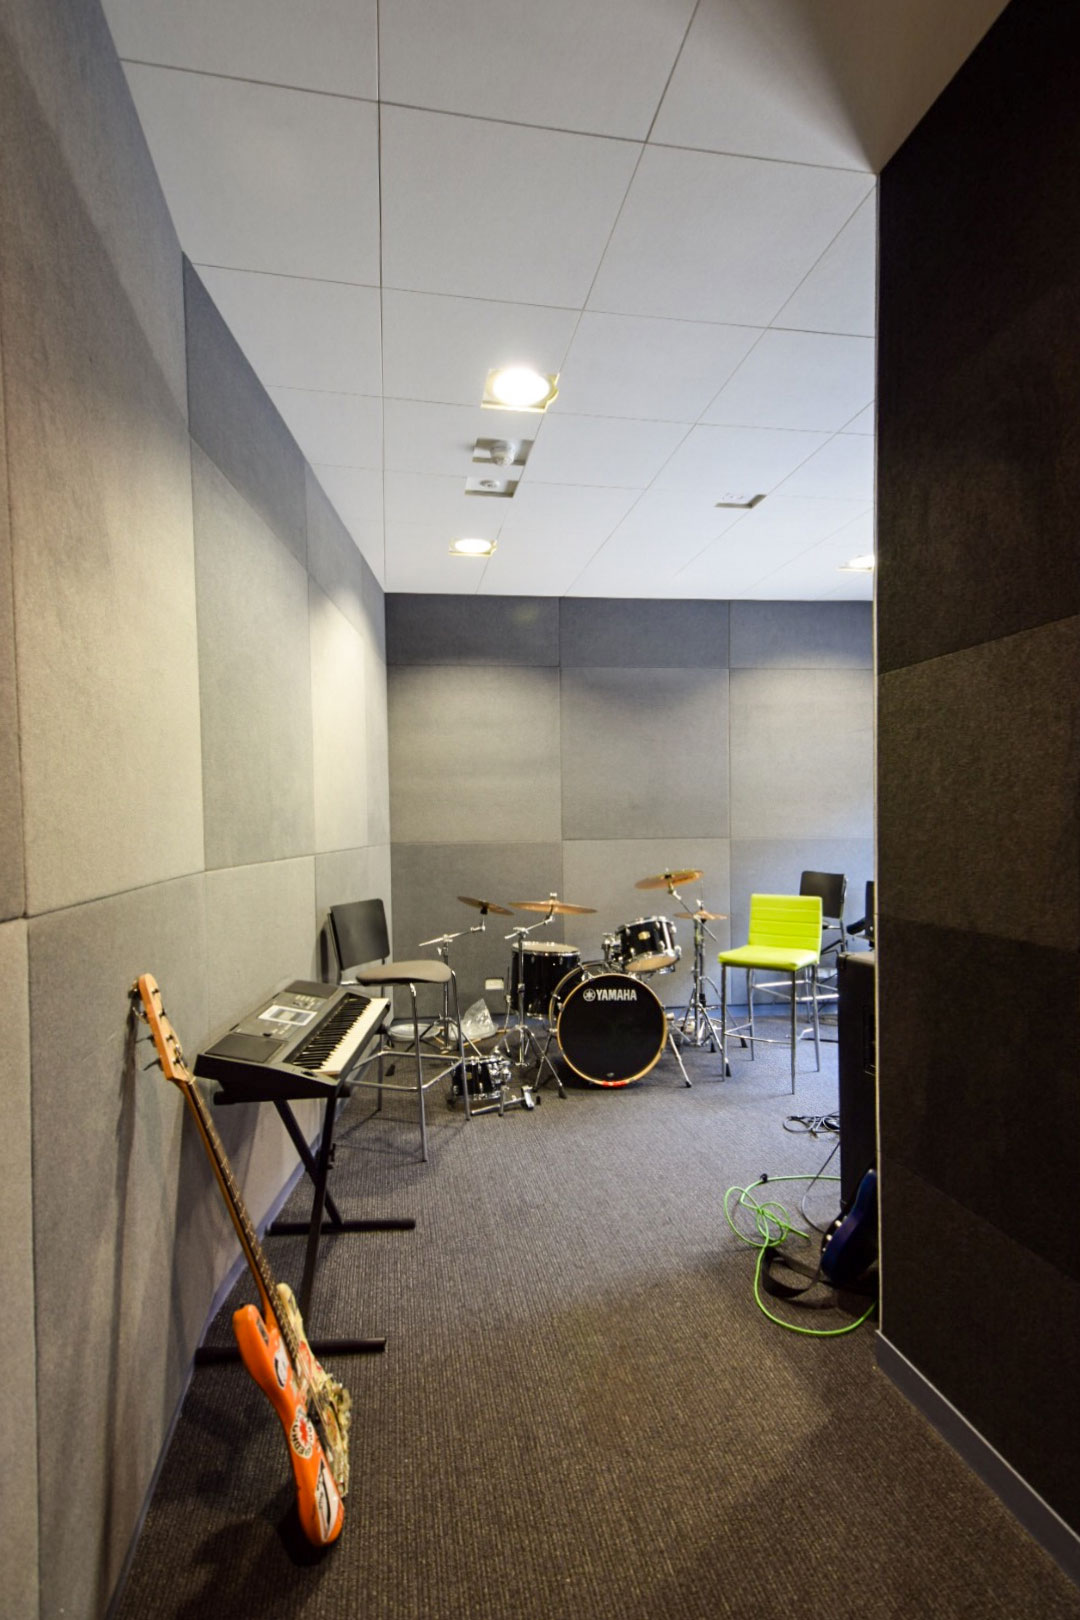 Music room with instruments and acoustic panels